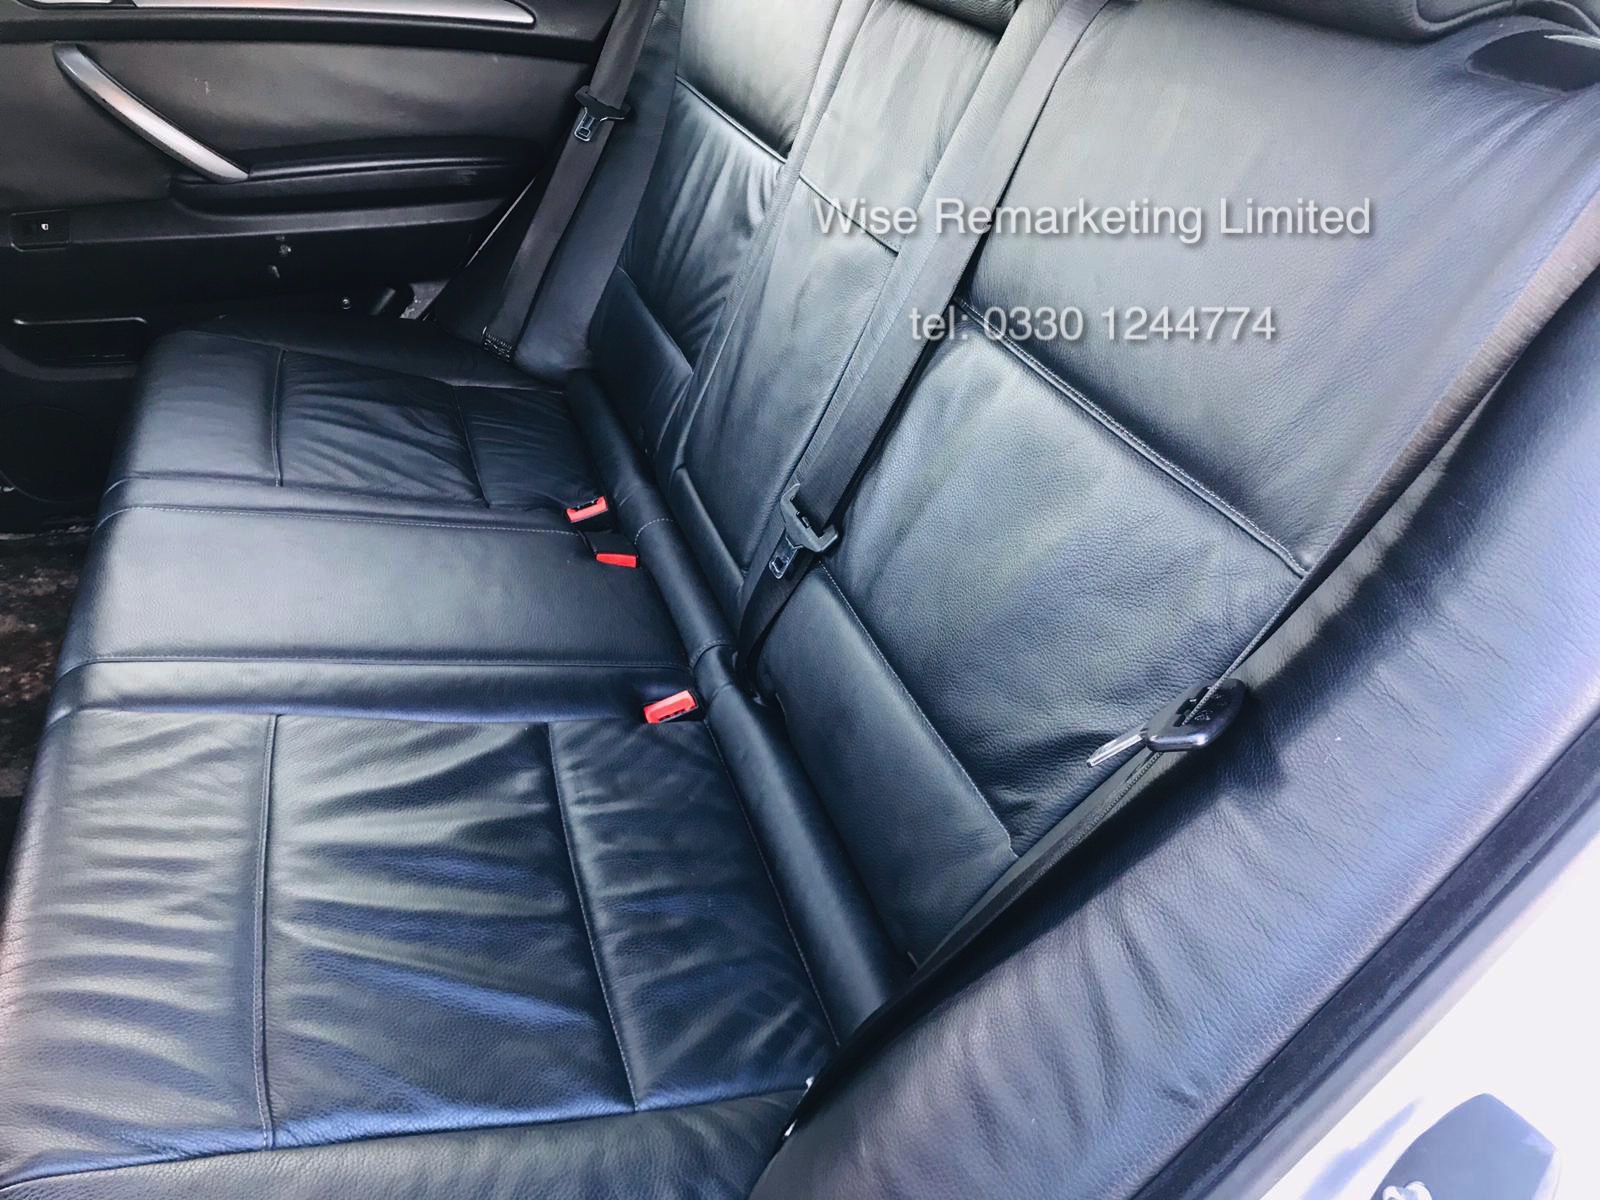 BMW X5 Sport 3.0d Auto - 2006 Model - Full Leather - Heated Seats - Fully Loaded - Image 10 of 20